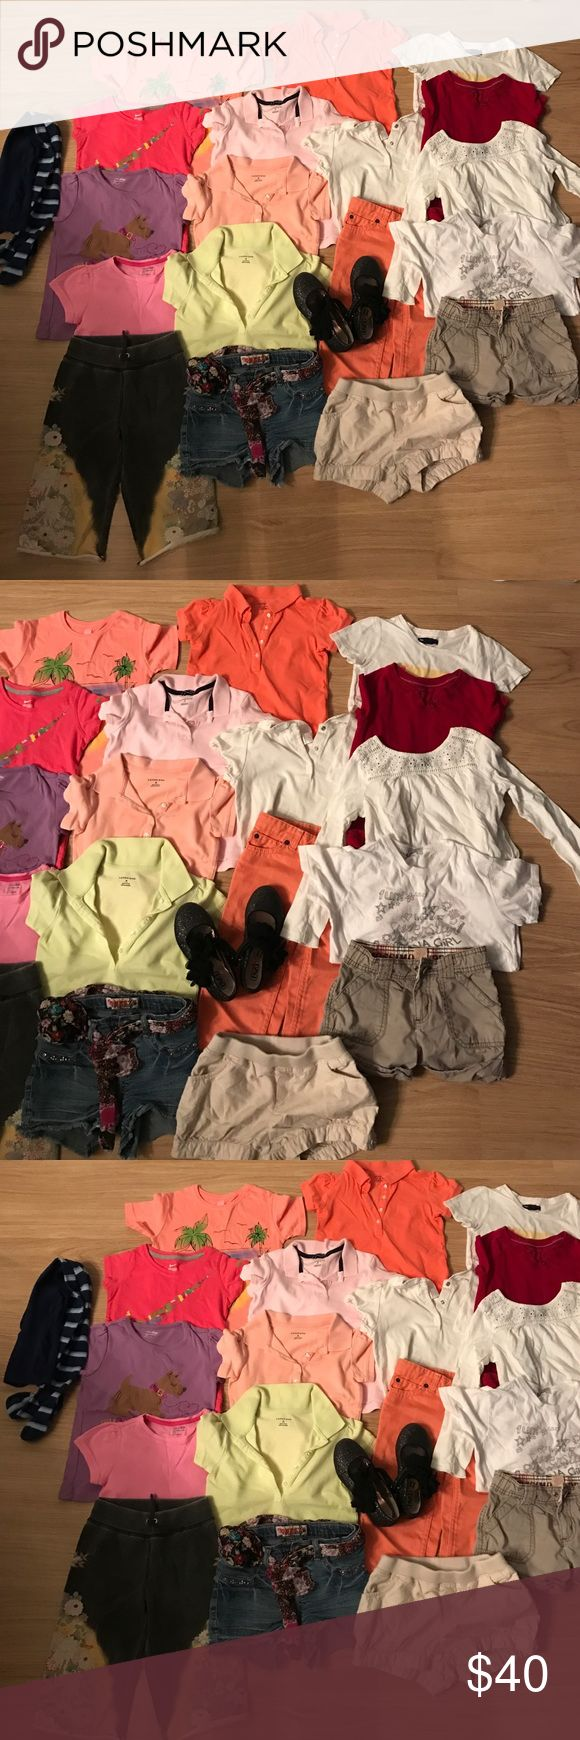 20 pc girls sz 5 TEE T-shirt shorts Gap Lands'end 20 pc girls LOT size 5 excellent condition NO Rips NO STAINS!!!!SHORTS SLEEVES 4 pc LANDS'END 5 pc baby Gap Janie and Jacks Dupo Dupo Girl Nike Reebok!!!shoes 11 sz !!! Shorts 5 pc Lands' END LUCKY BRAND MOSSIMO SUPPLY CO,Squeeze,Lands End kids, GAP Shirts & Tops Tees - Short Sleeve